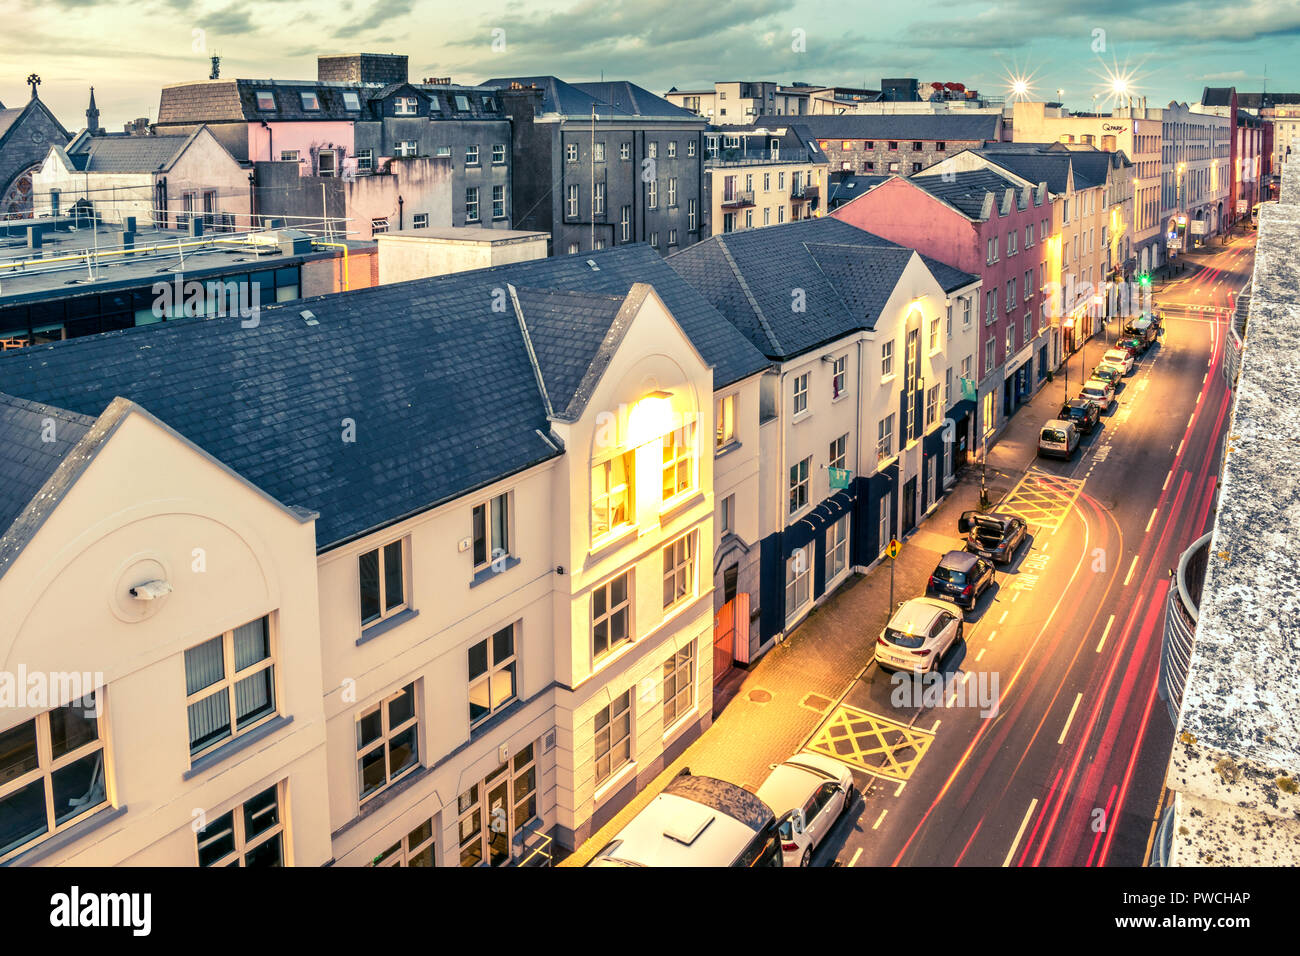 Galway rooftops - Stock Image